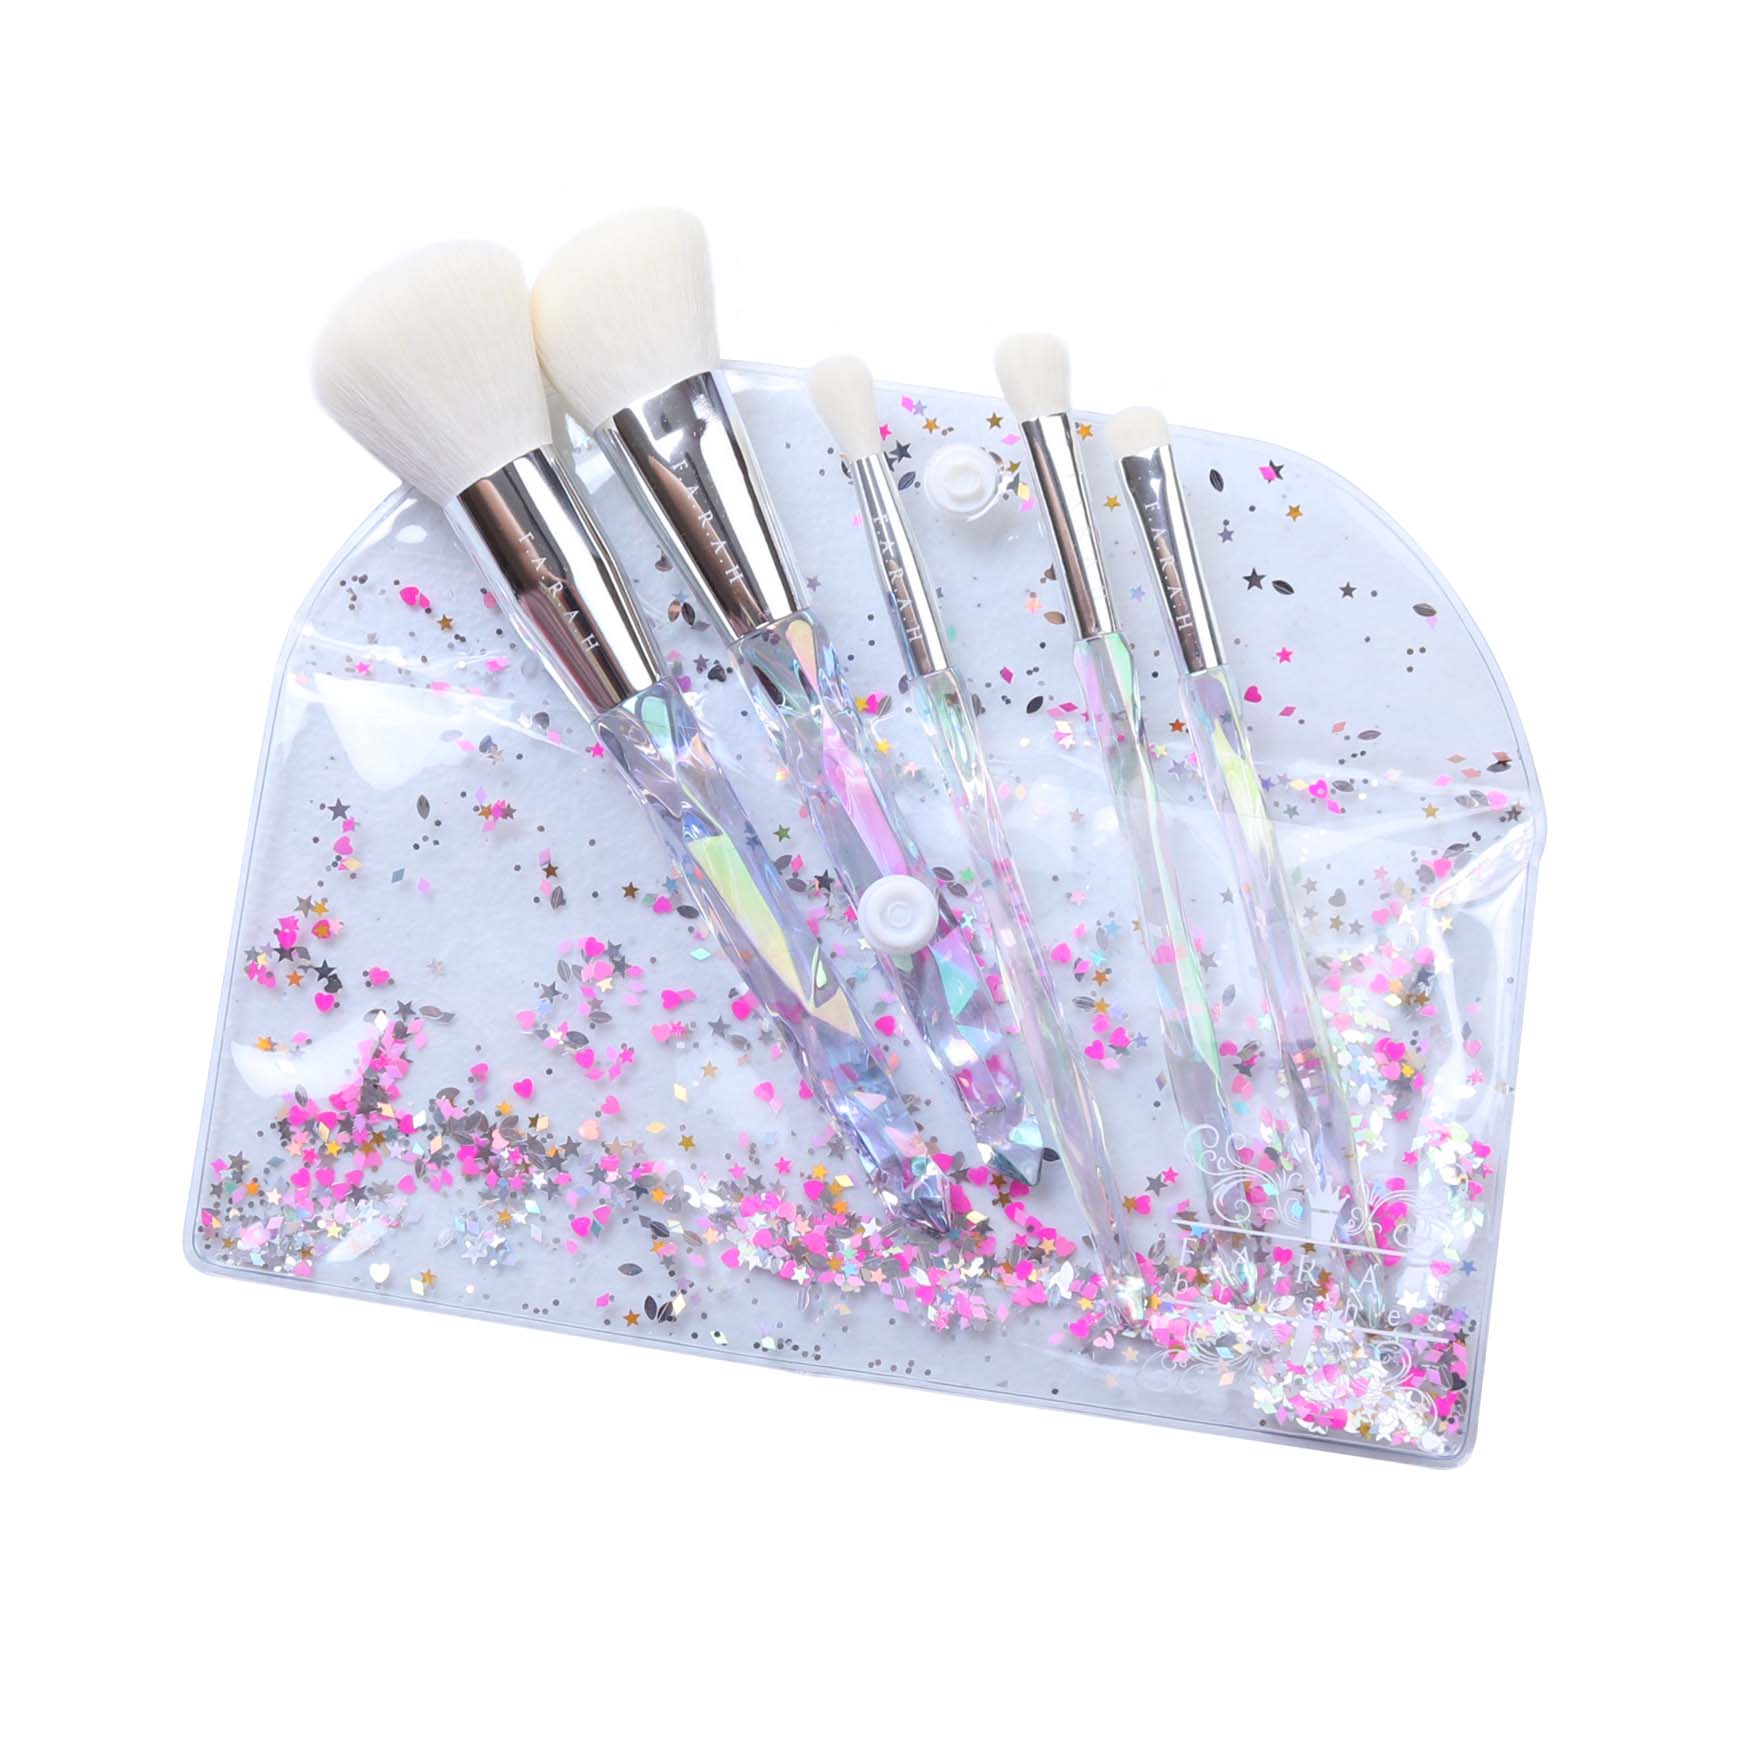 Show Me Magic brush set (Opal)